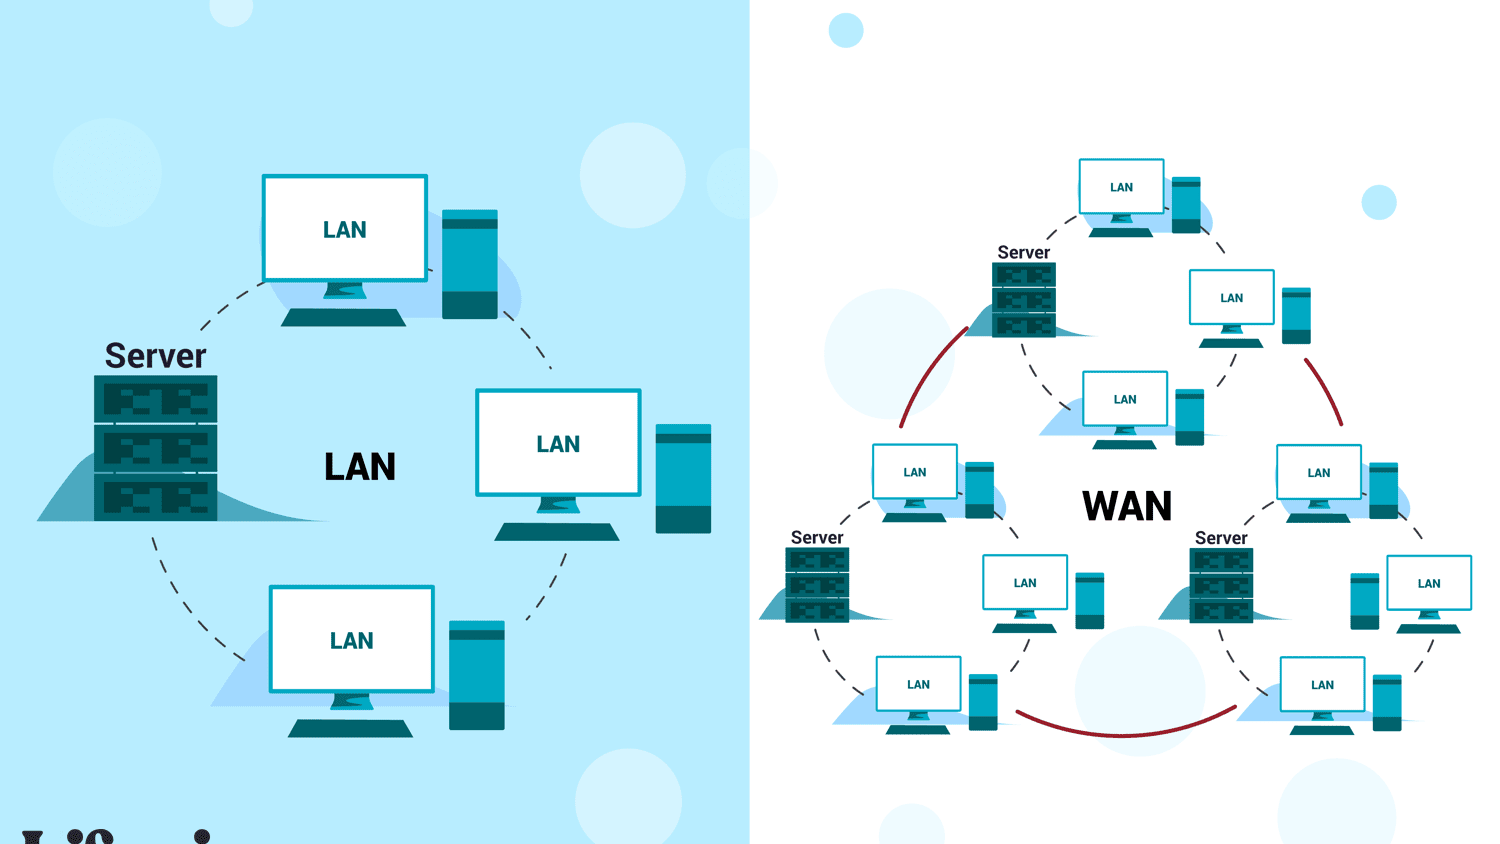 Lans Wans And Other Area Networks Explained